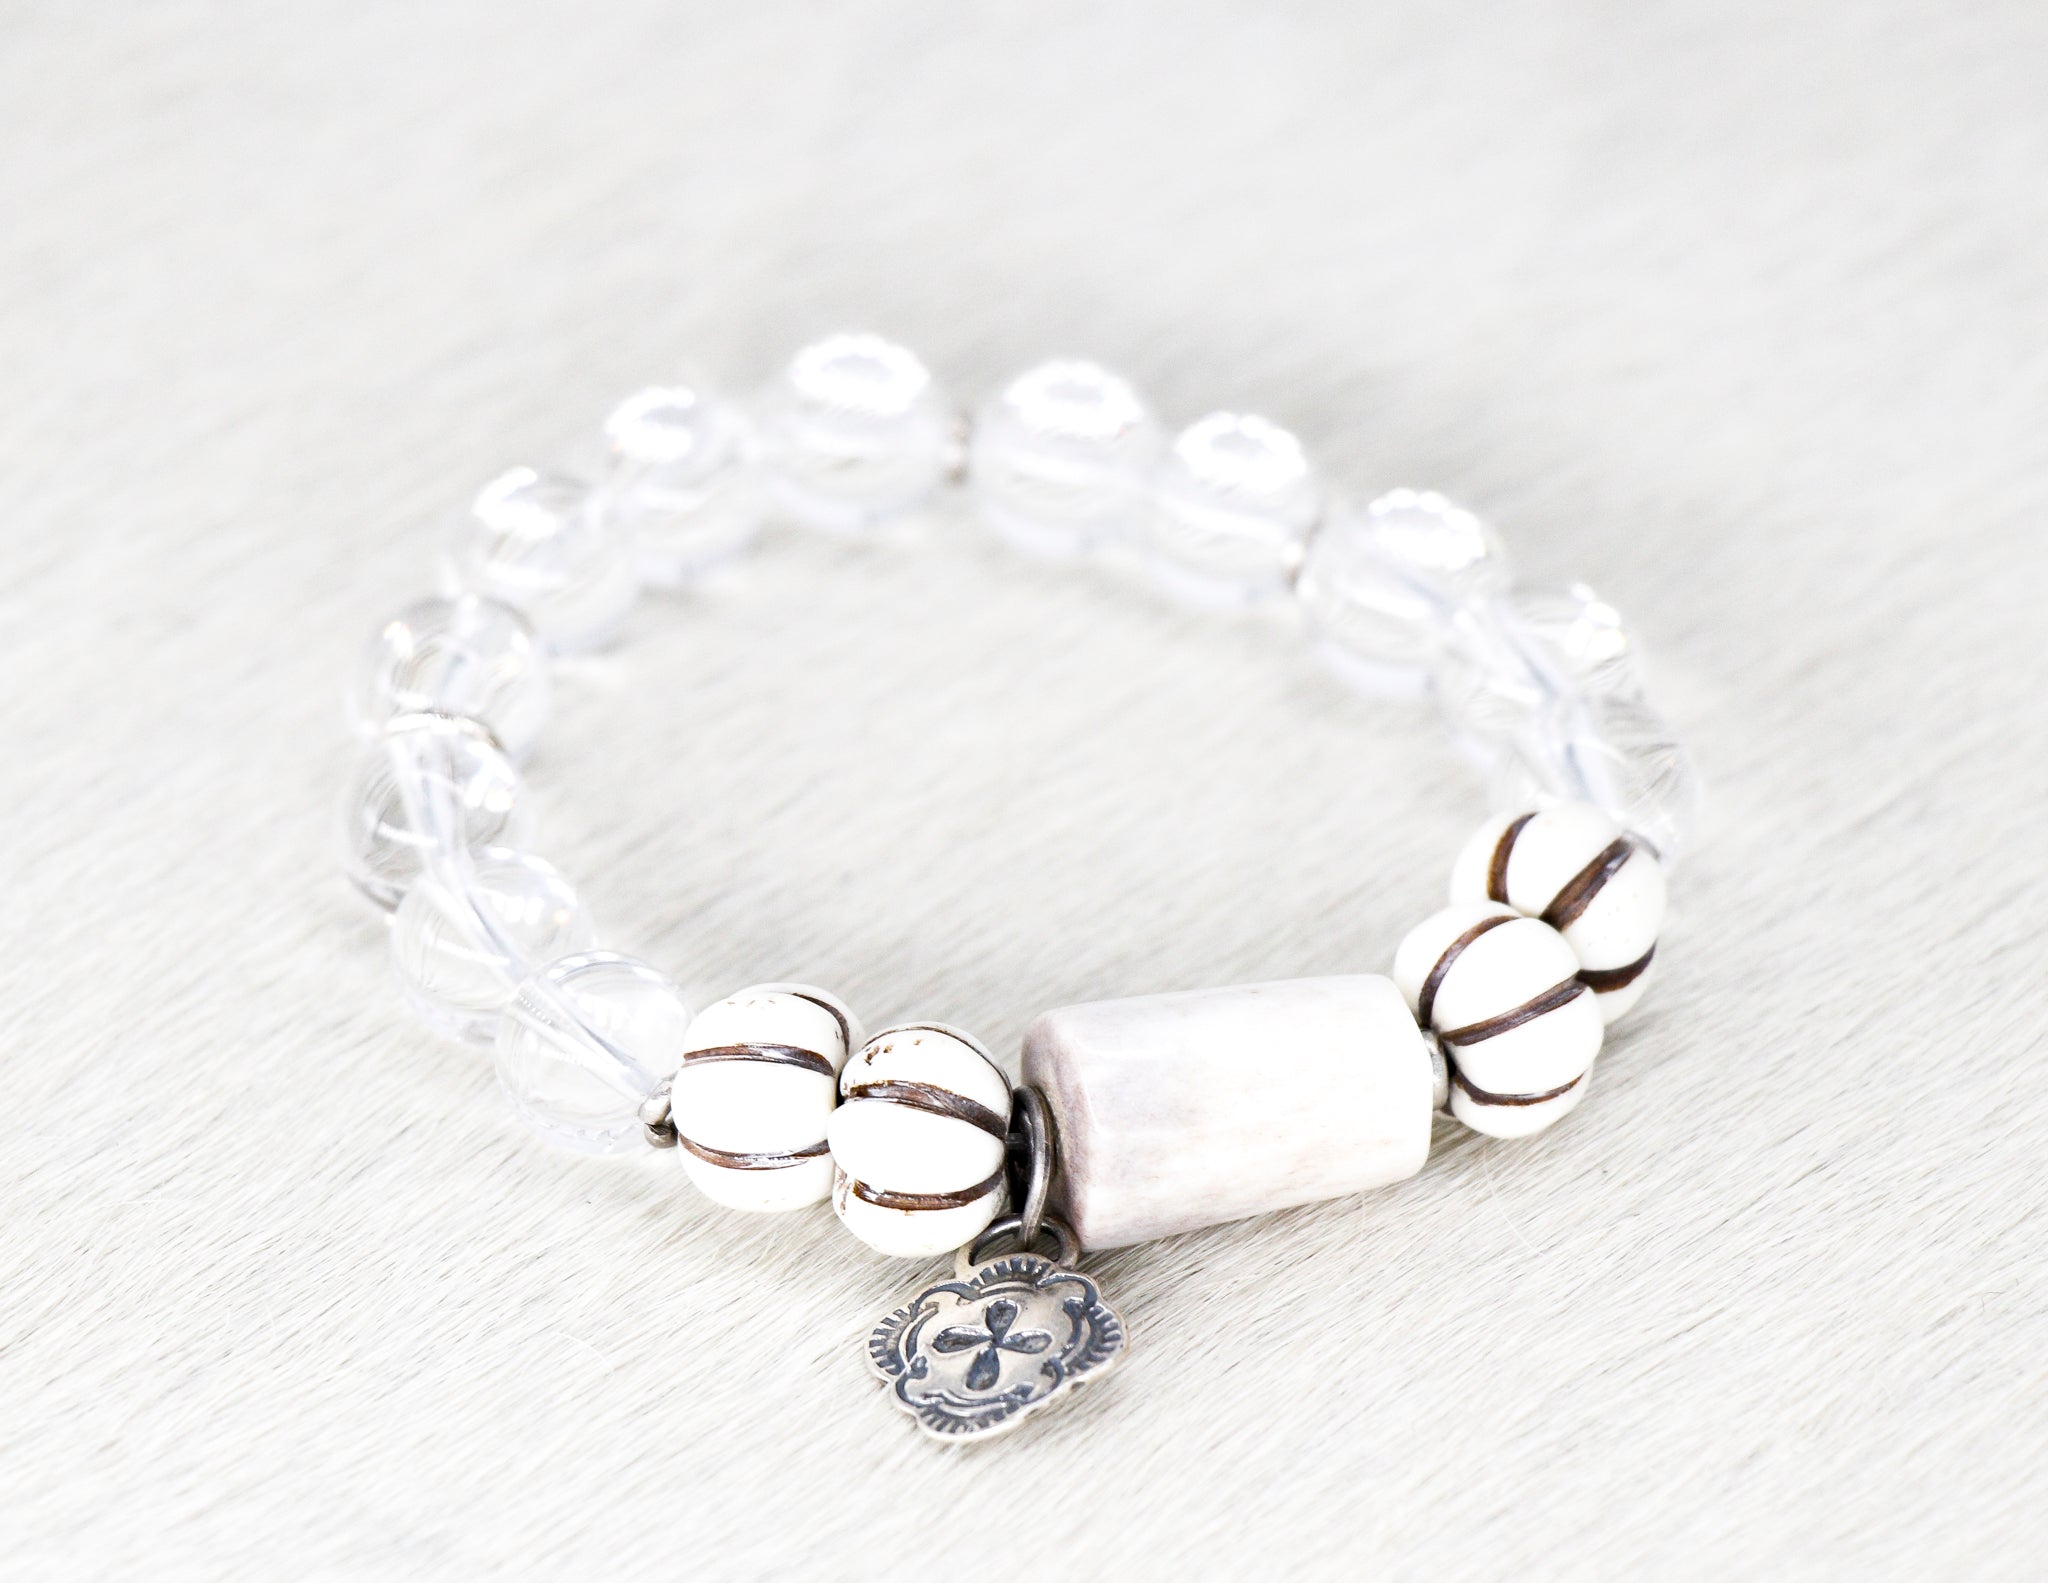 Crystal quartz bracelet with carved bone and a sterling silver cross pendant